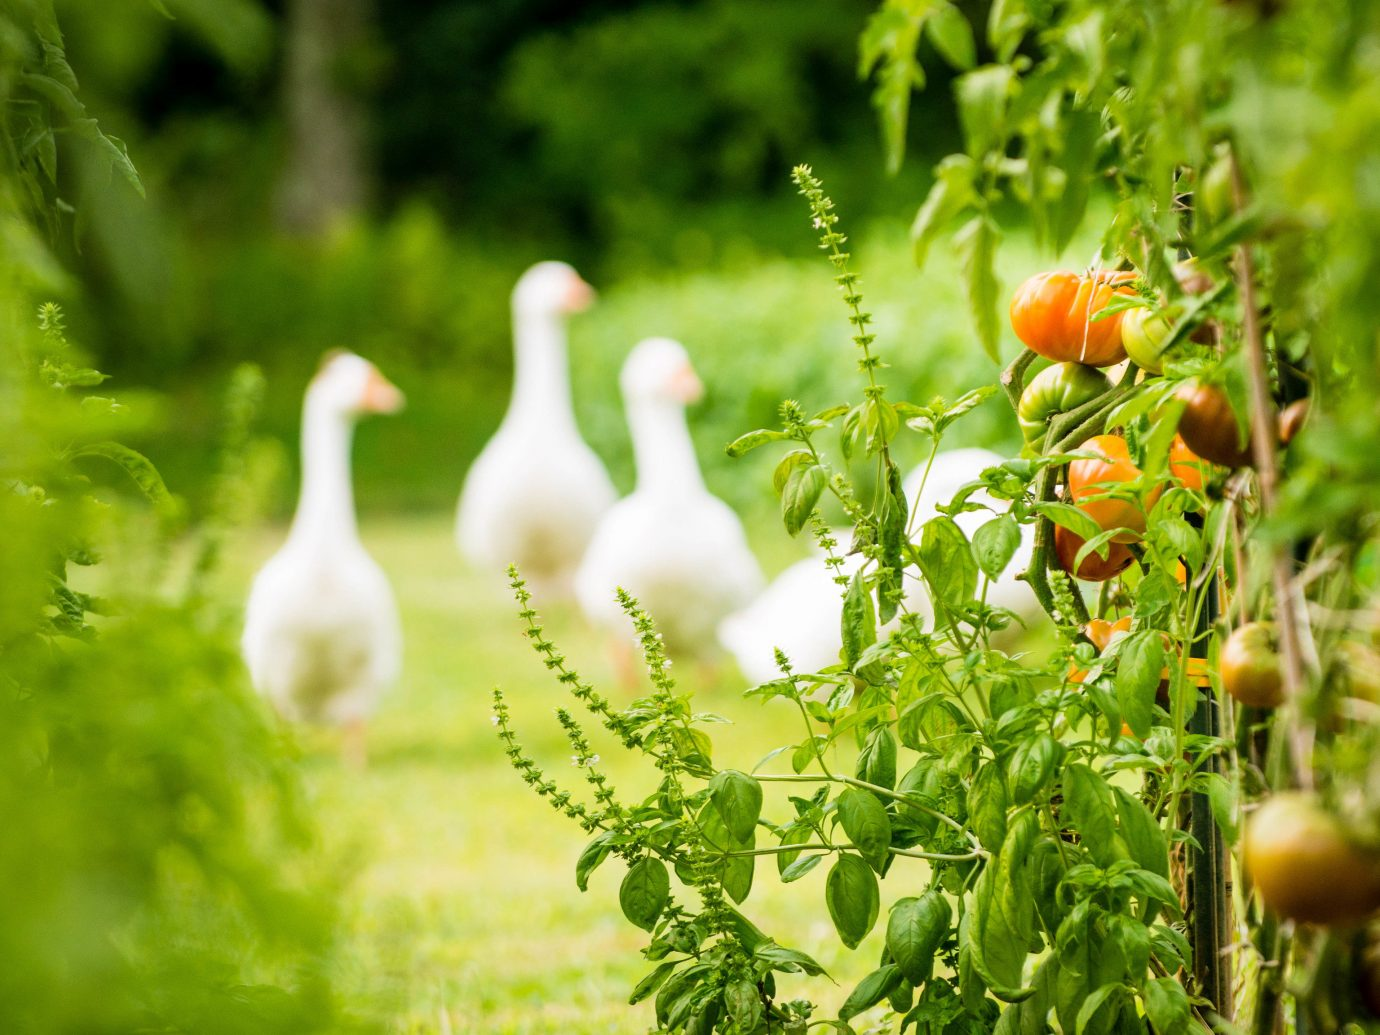 Boutique Hotels Fall Food + Drink Hotels Outdoors + Adventure Weekend Getaways tree outdoor Bird water bird grass duck ducks geese and swans waterfowl livestock field Garden goose beak plant lush